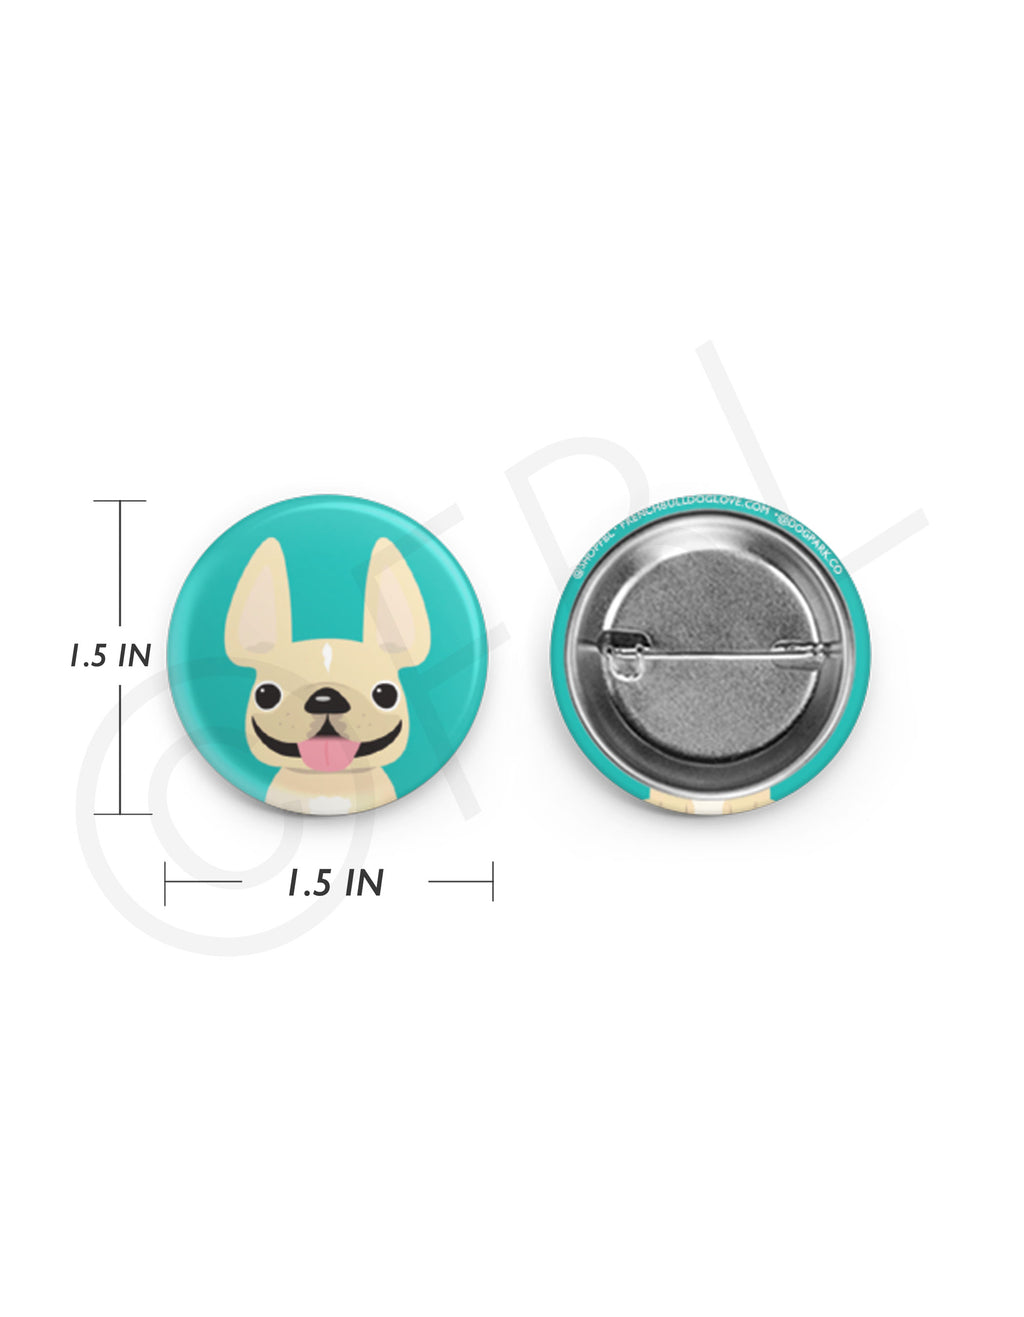 Mini French Bulldog Button - 1.5 inch - Cream